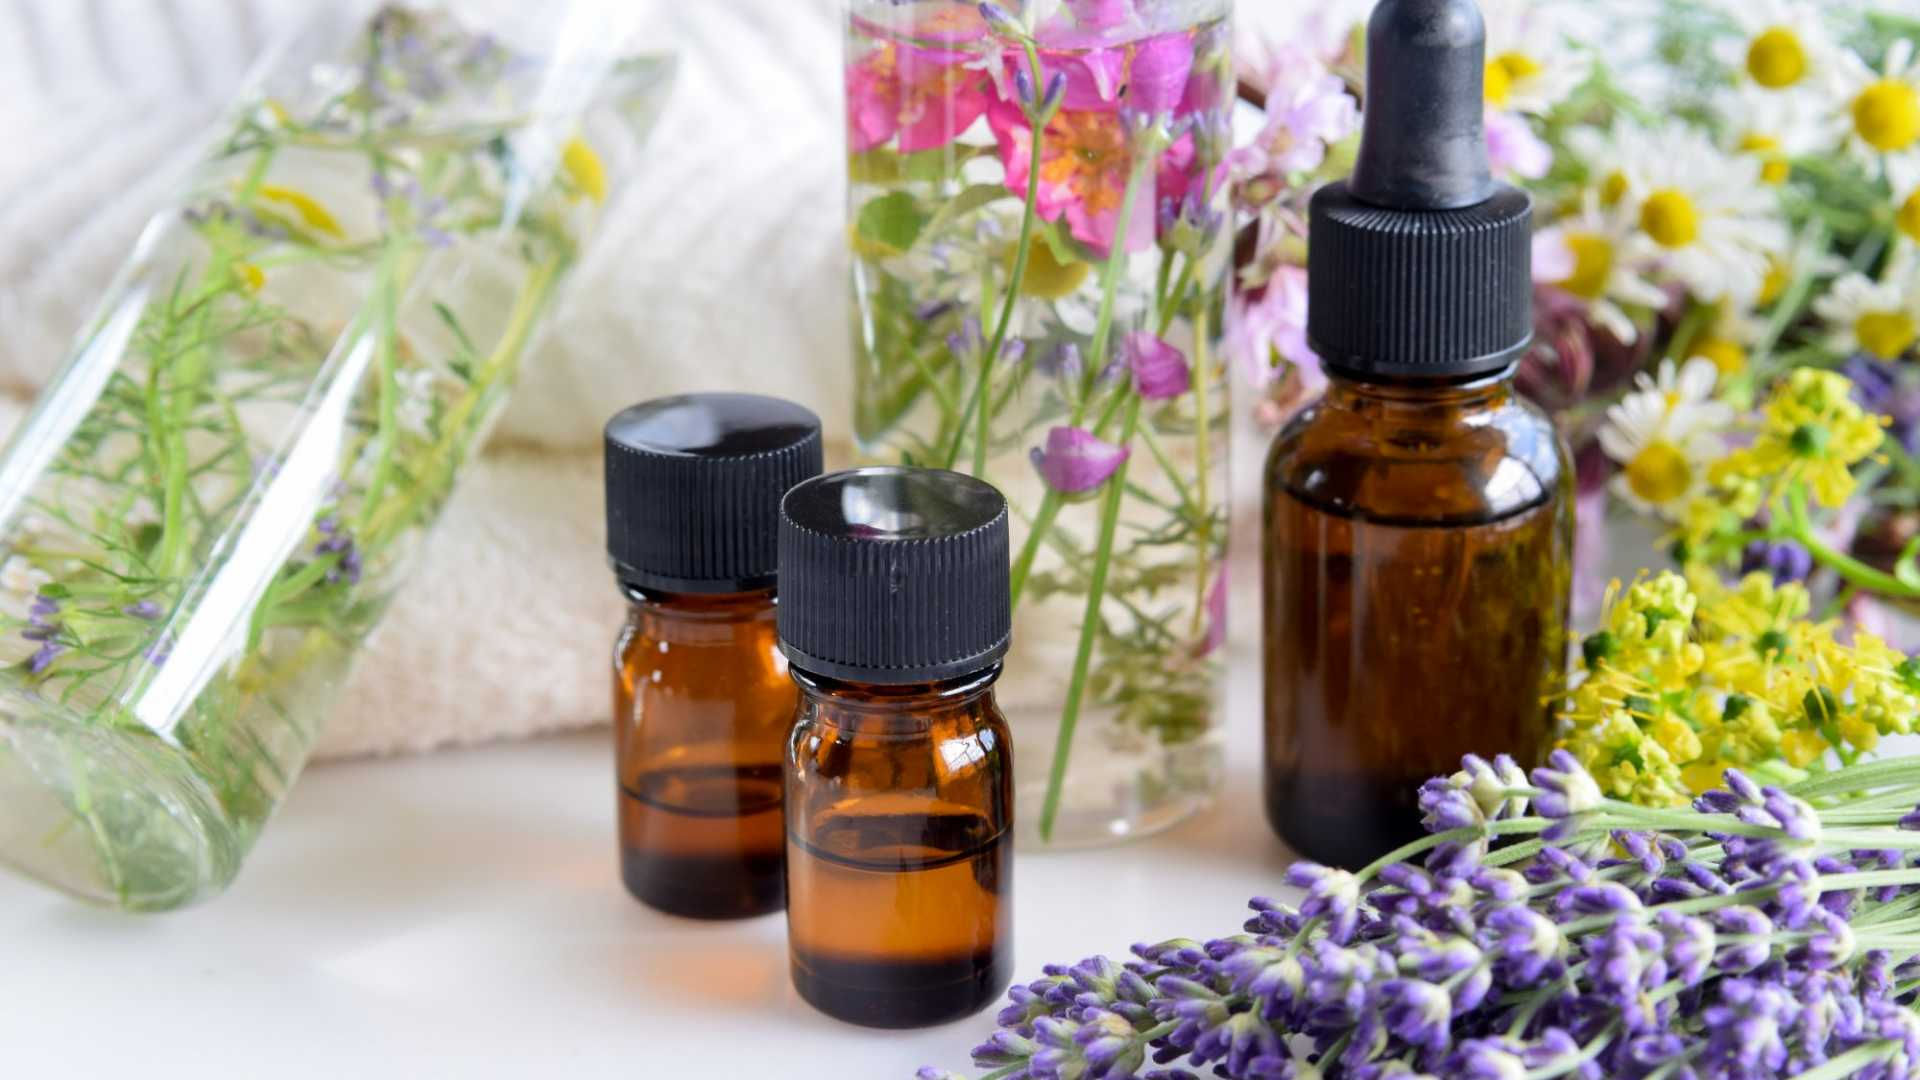 Stressed? New Research Confirms Inhaling This Scent Delivers Relaxing Relief from Anxiety